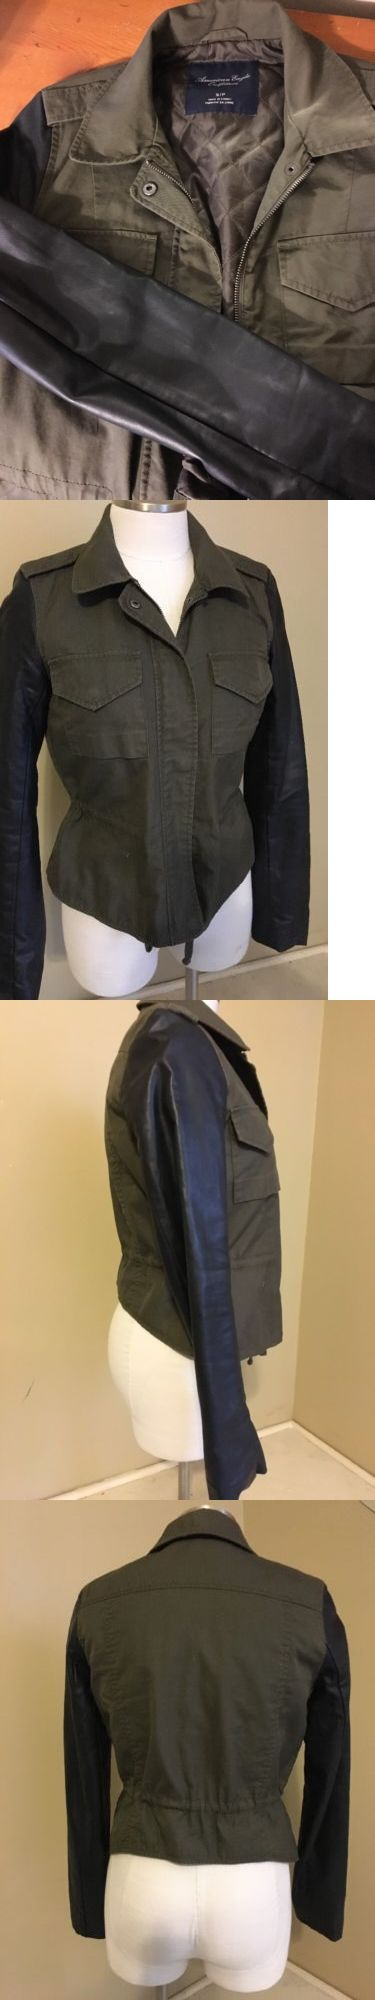 Women Coats And Jackets: American Eagle Womens Green And Black Military Moto Jacket Small Coat -> BUY IT NOW ONLY: $17.99 on eBay!